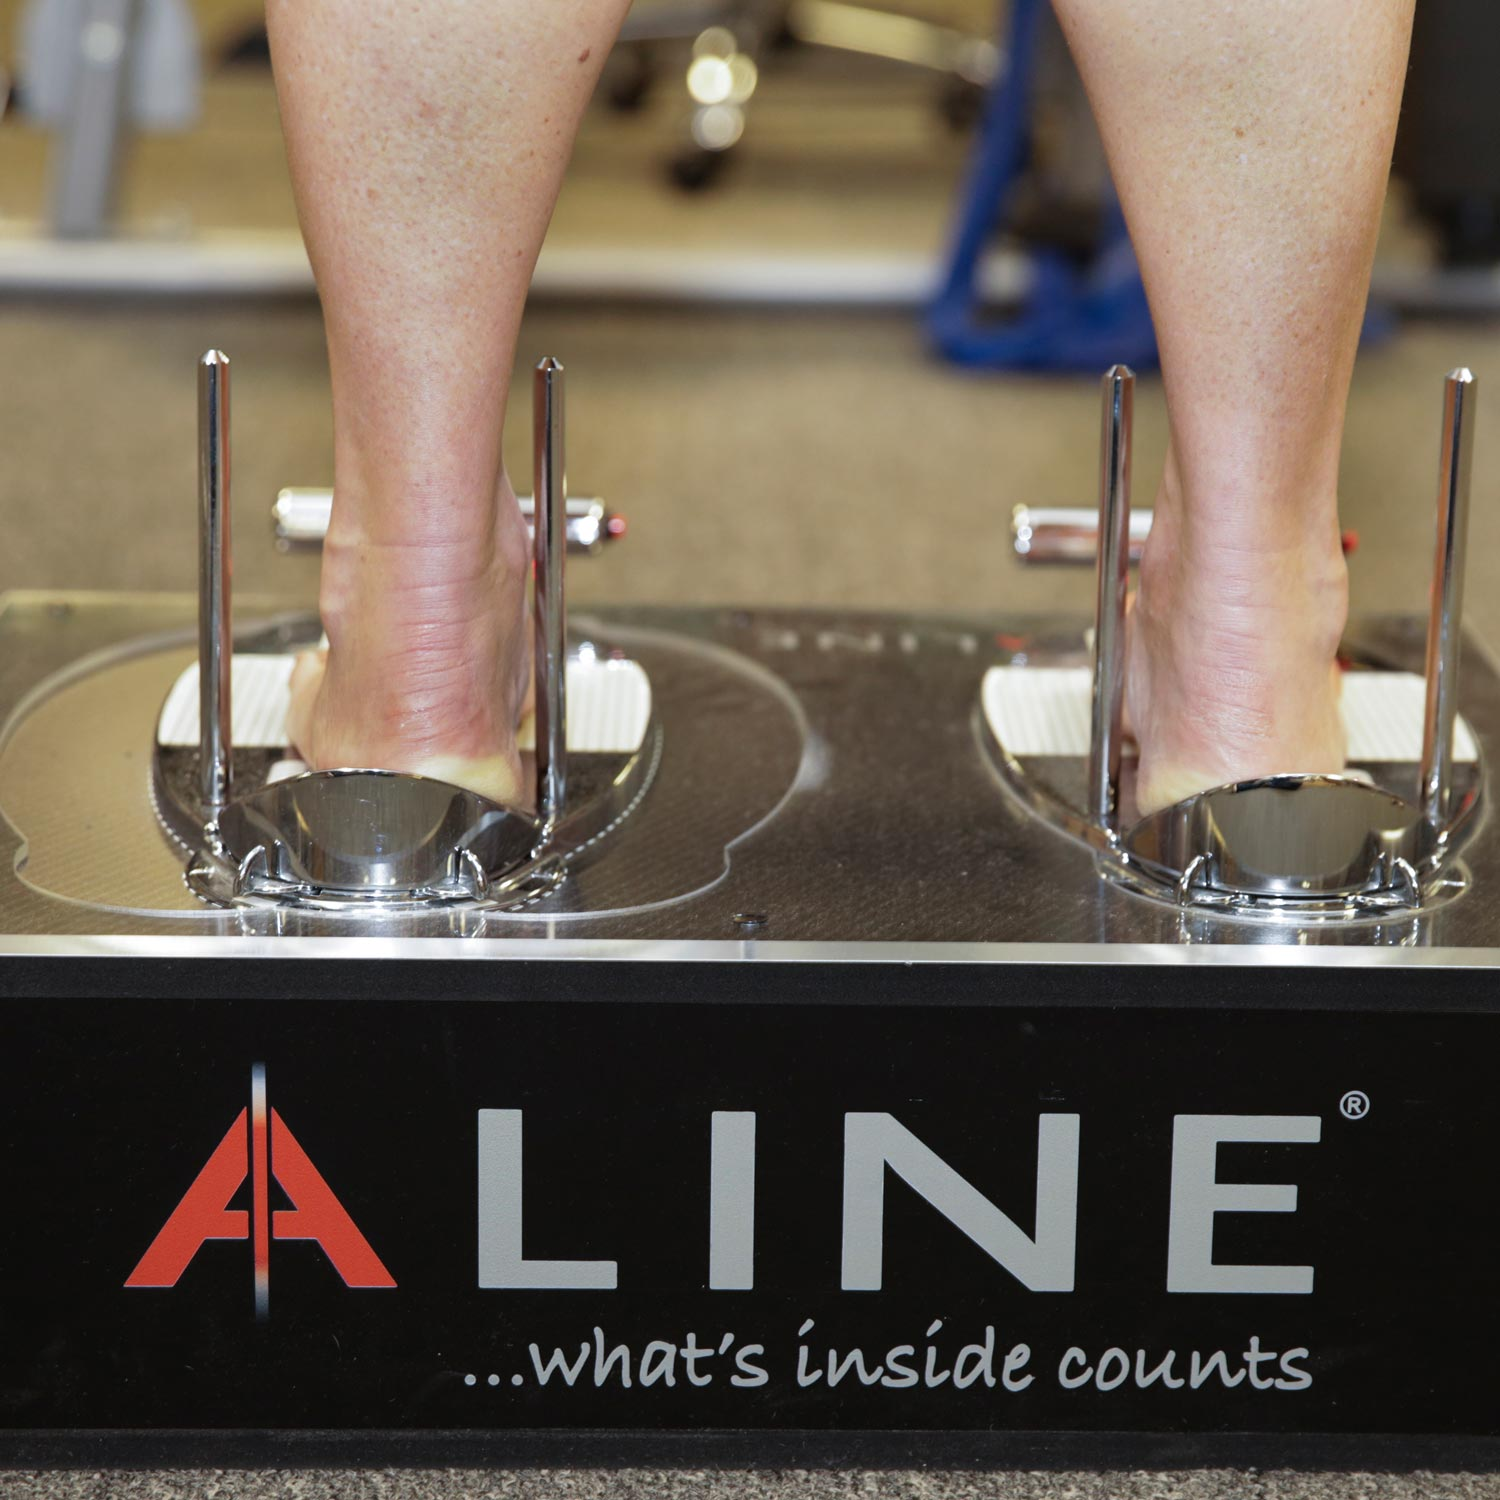 A-line orthotics analysis